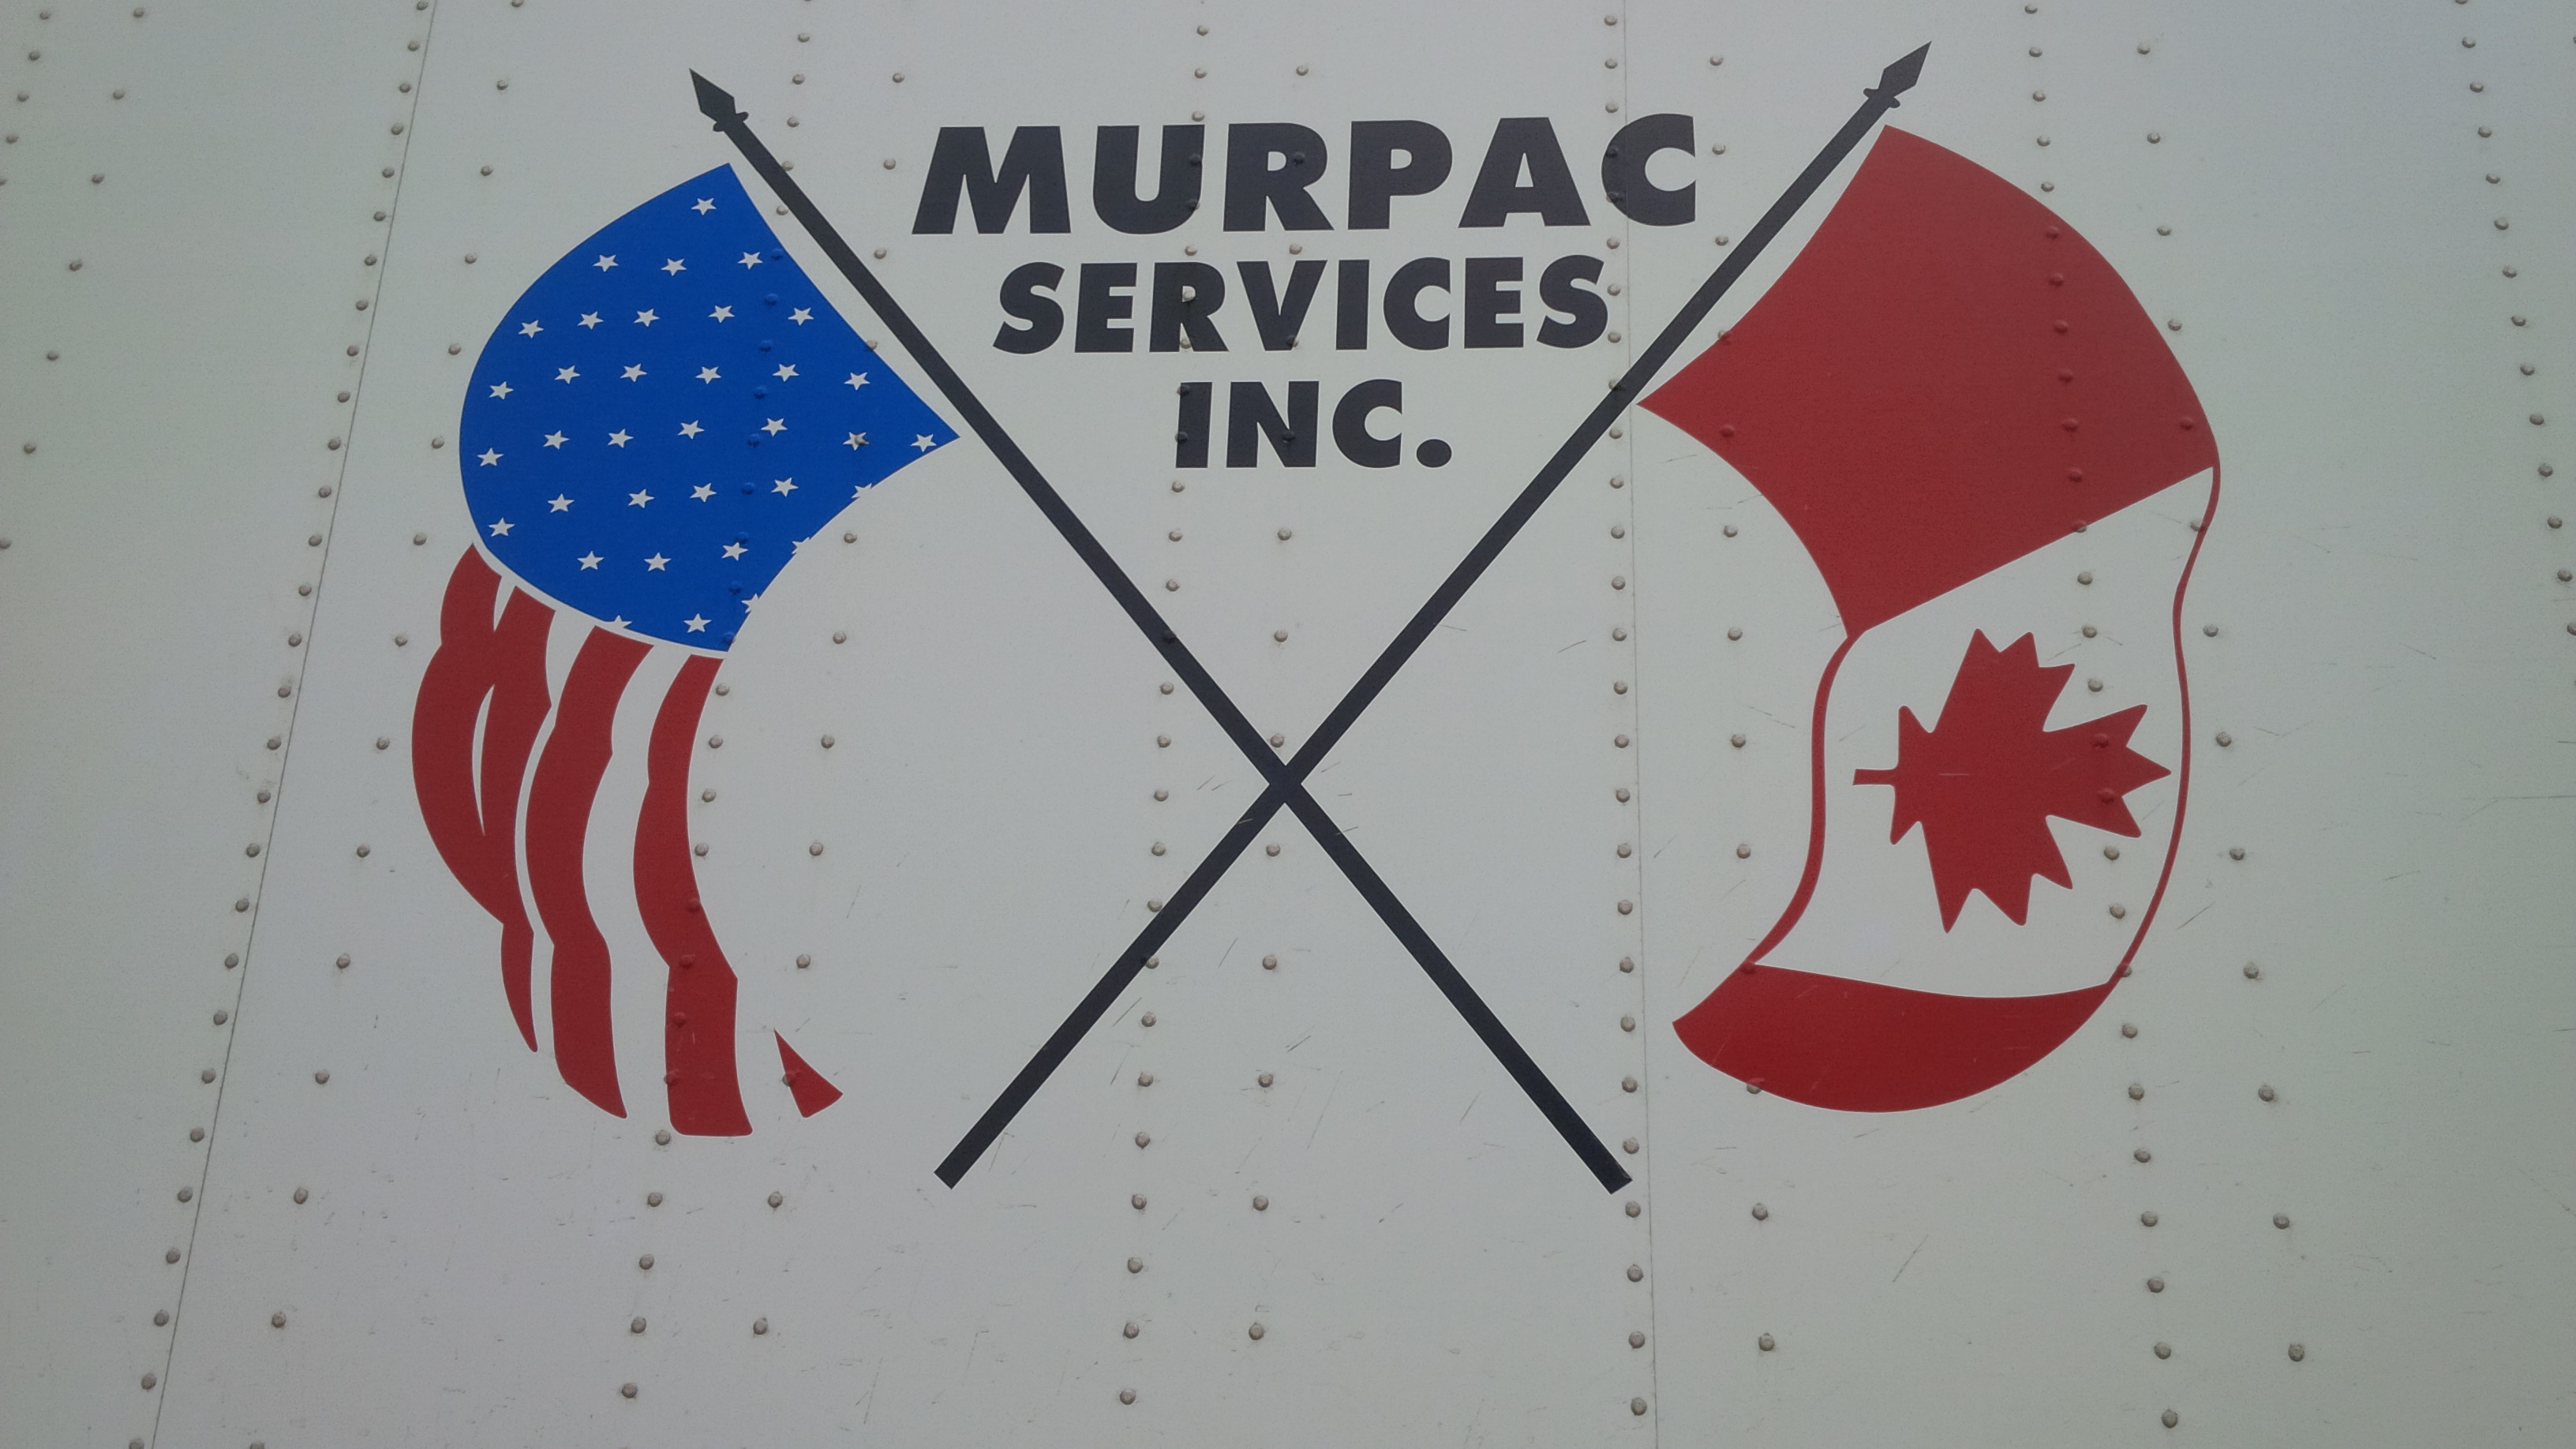 Murpac Services Logo Picture.jpg